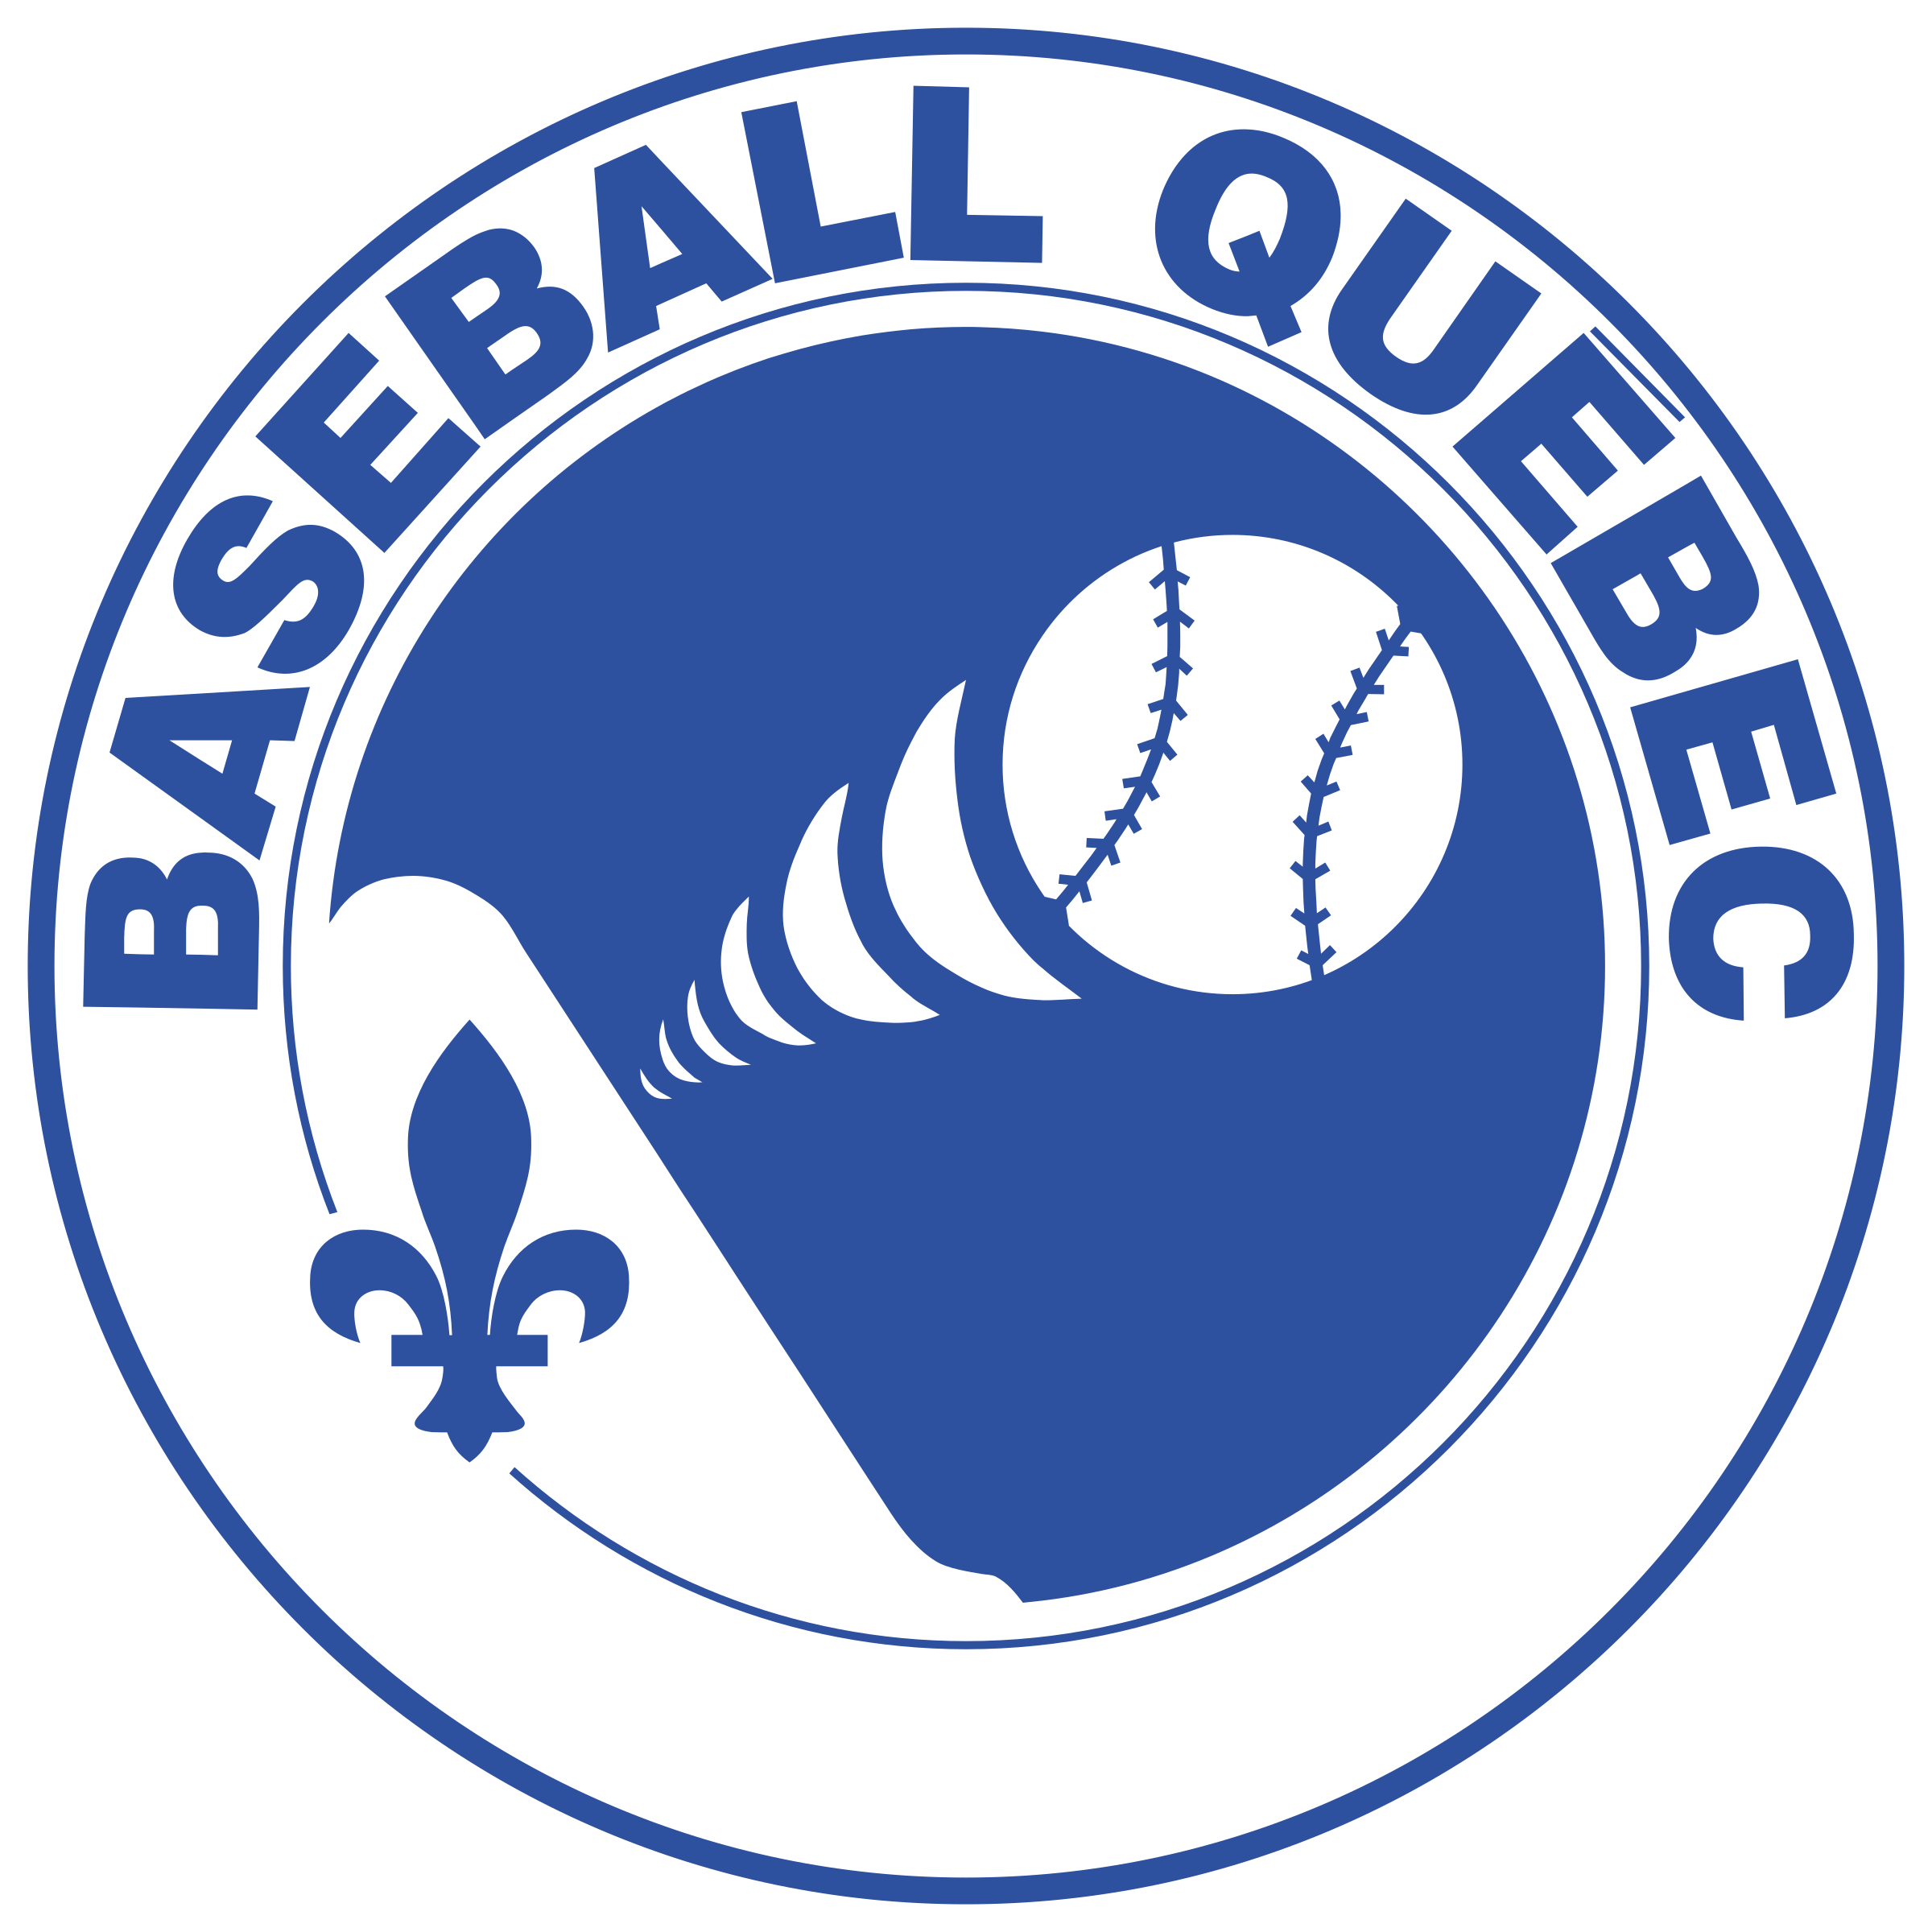 png library Quebec logo png transparent. Vector emblem baseball